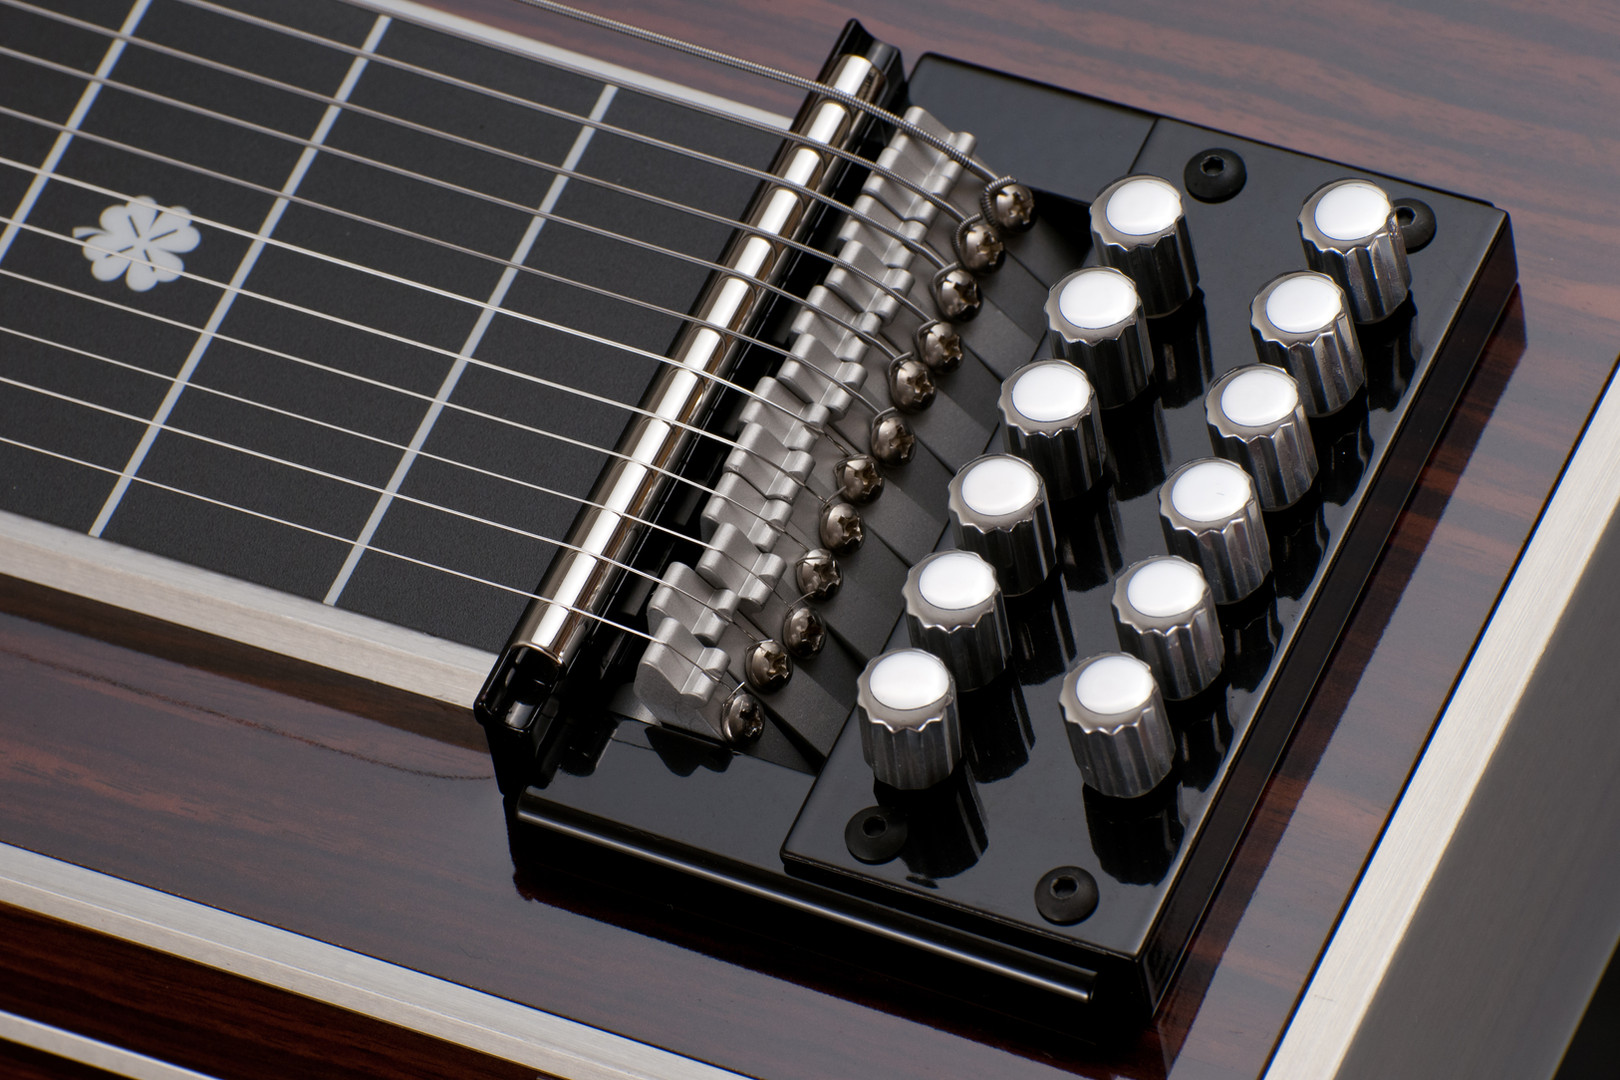 S-12 KU in Vintage Wood, tuner top angle